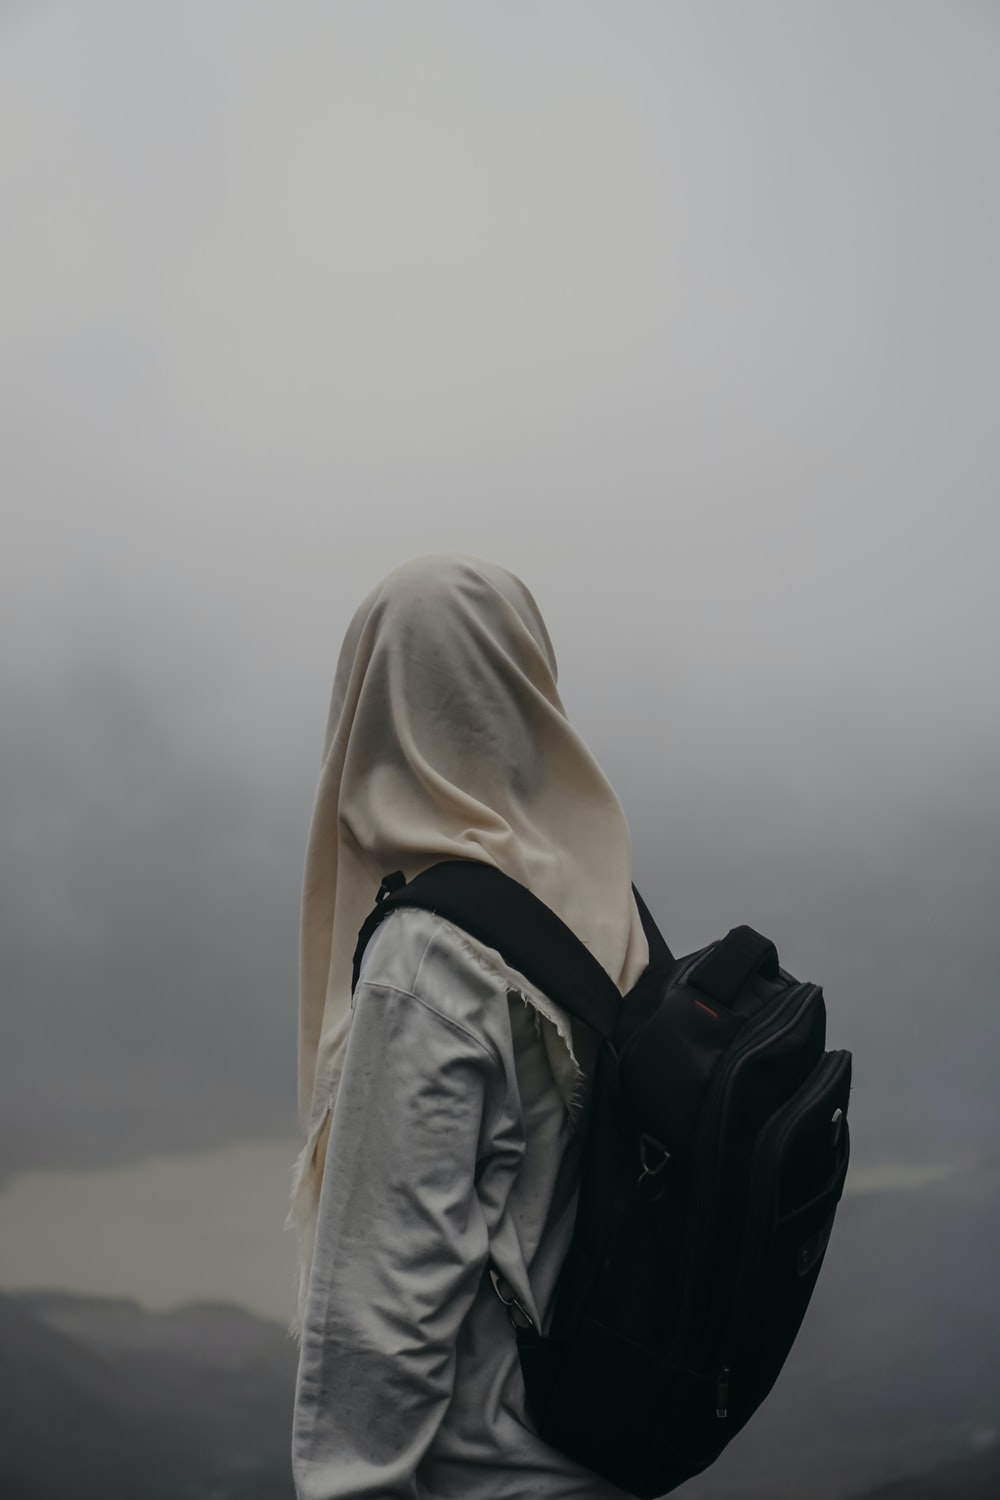 person in white hijab and black leather jacket